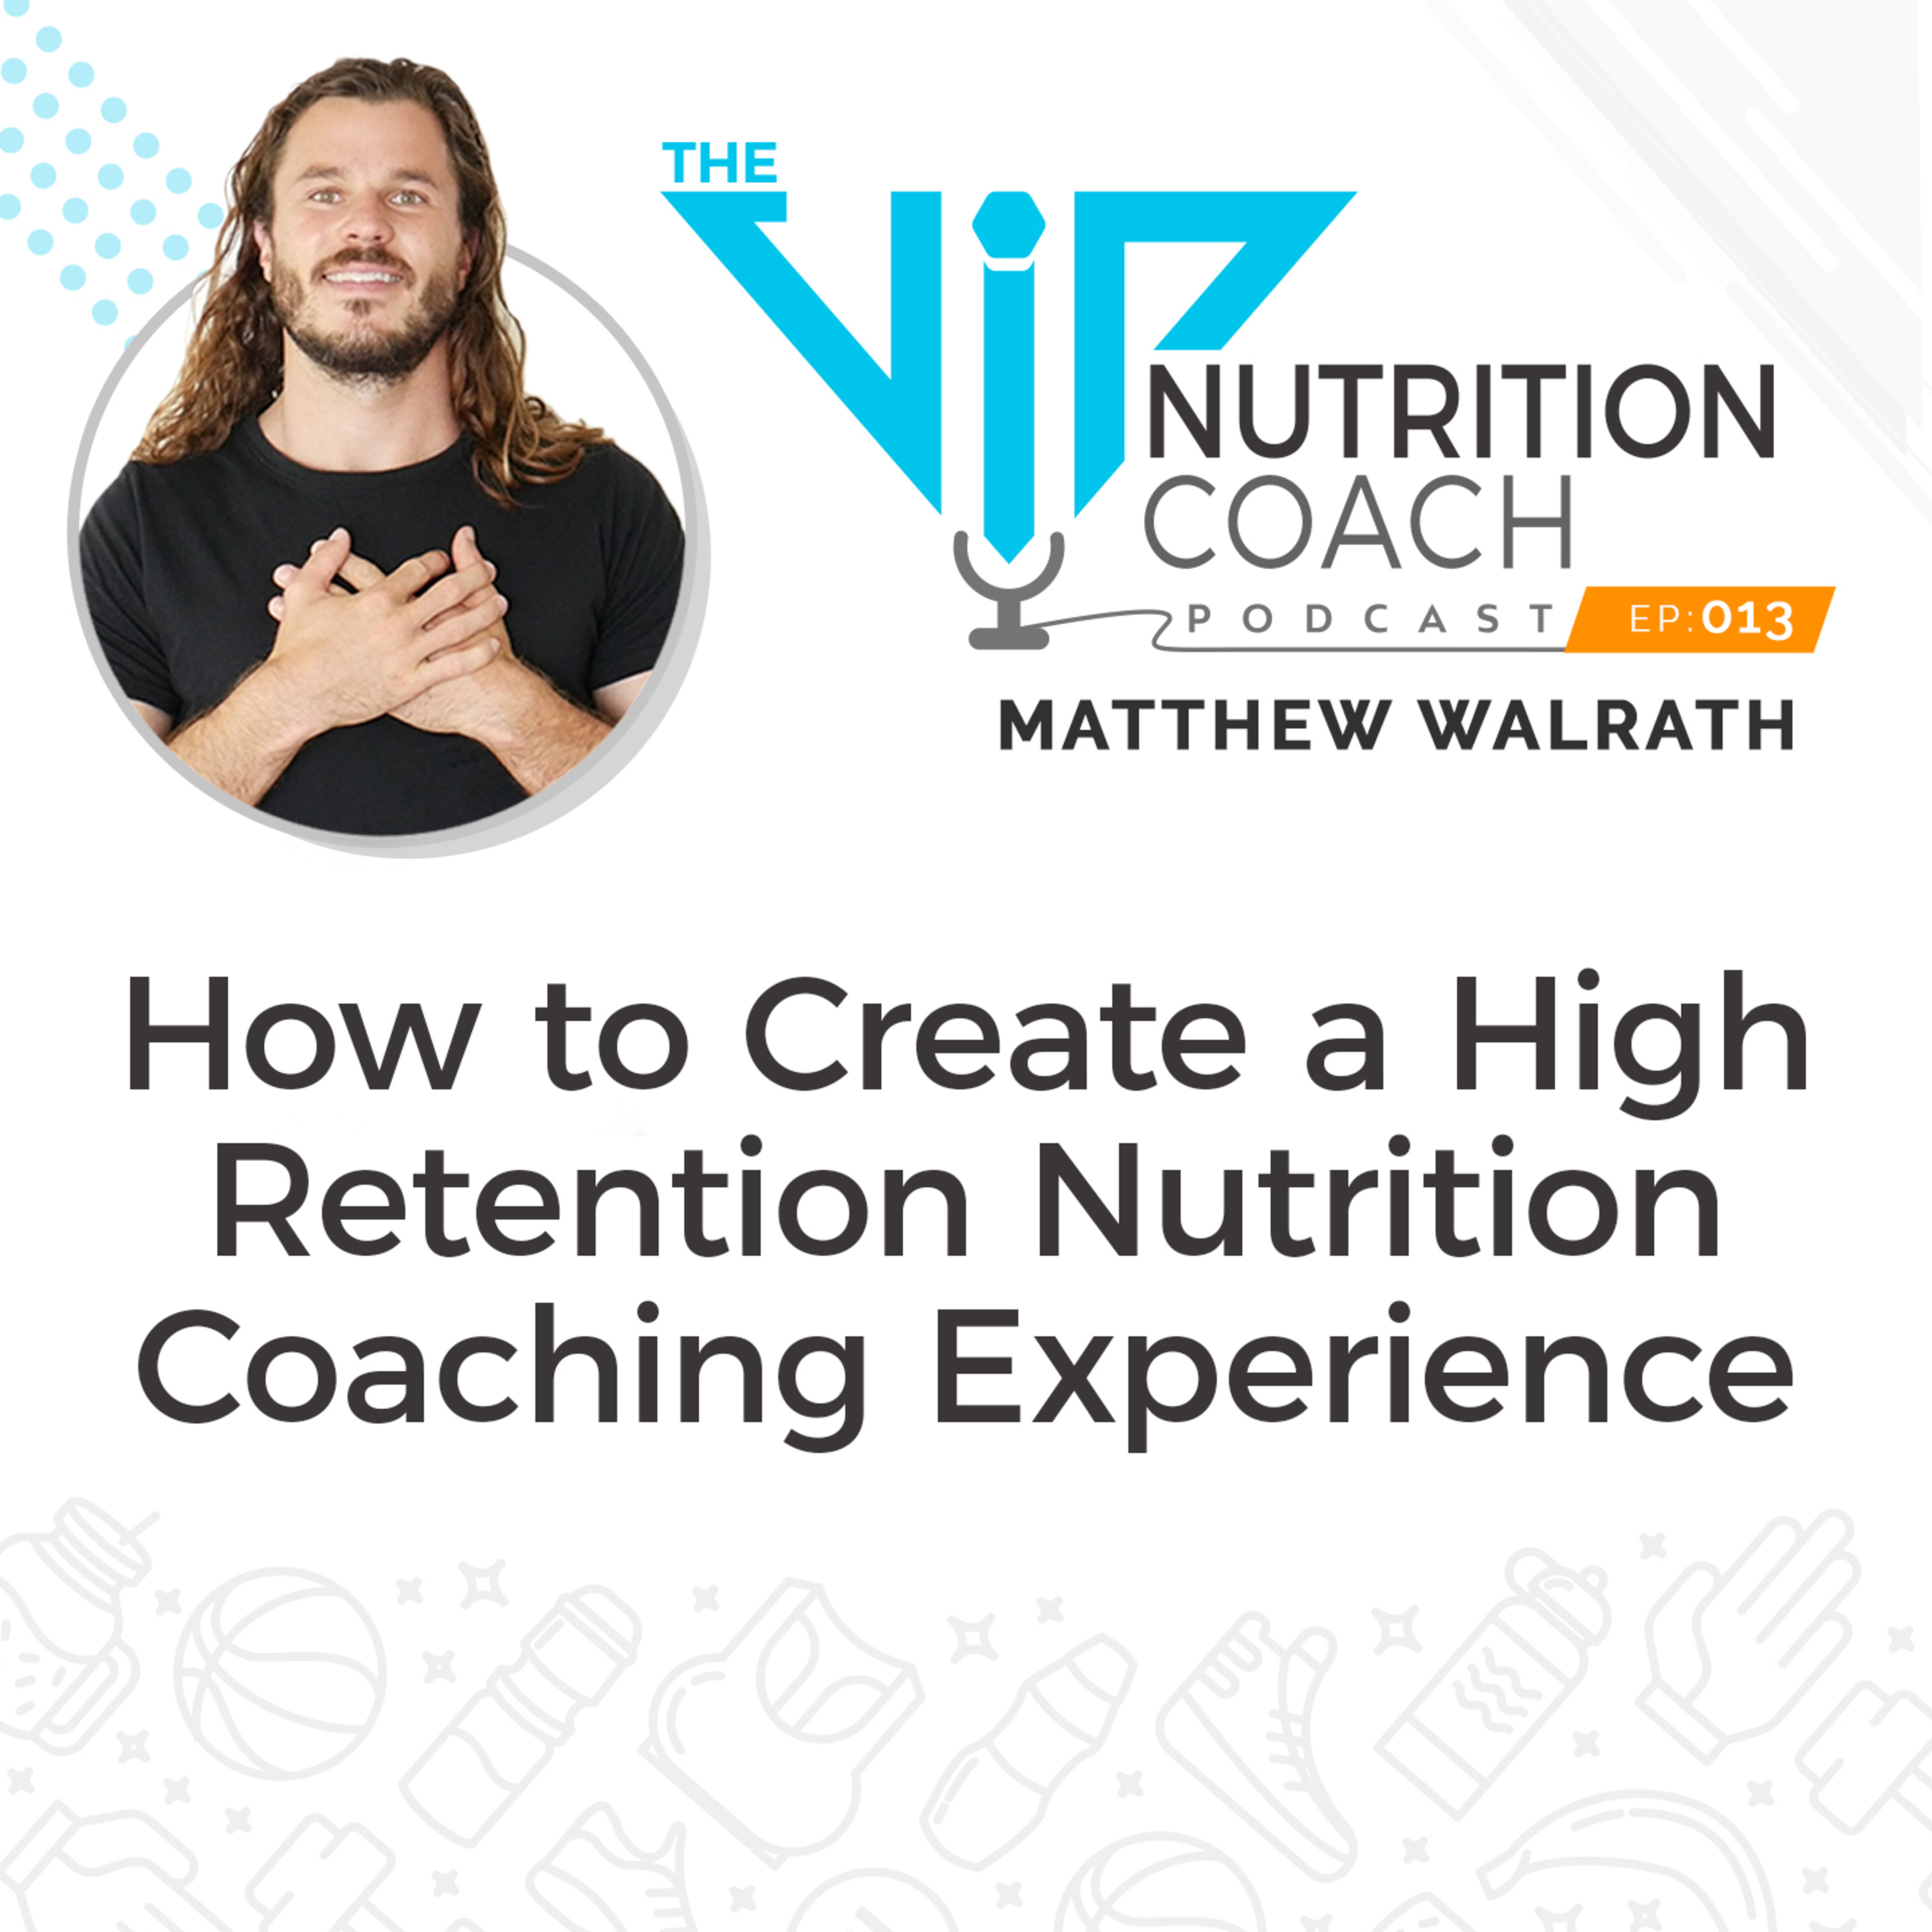 How to Create a High Retention Nutrition Coaching Experience